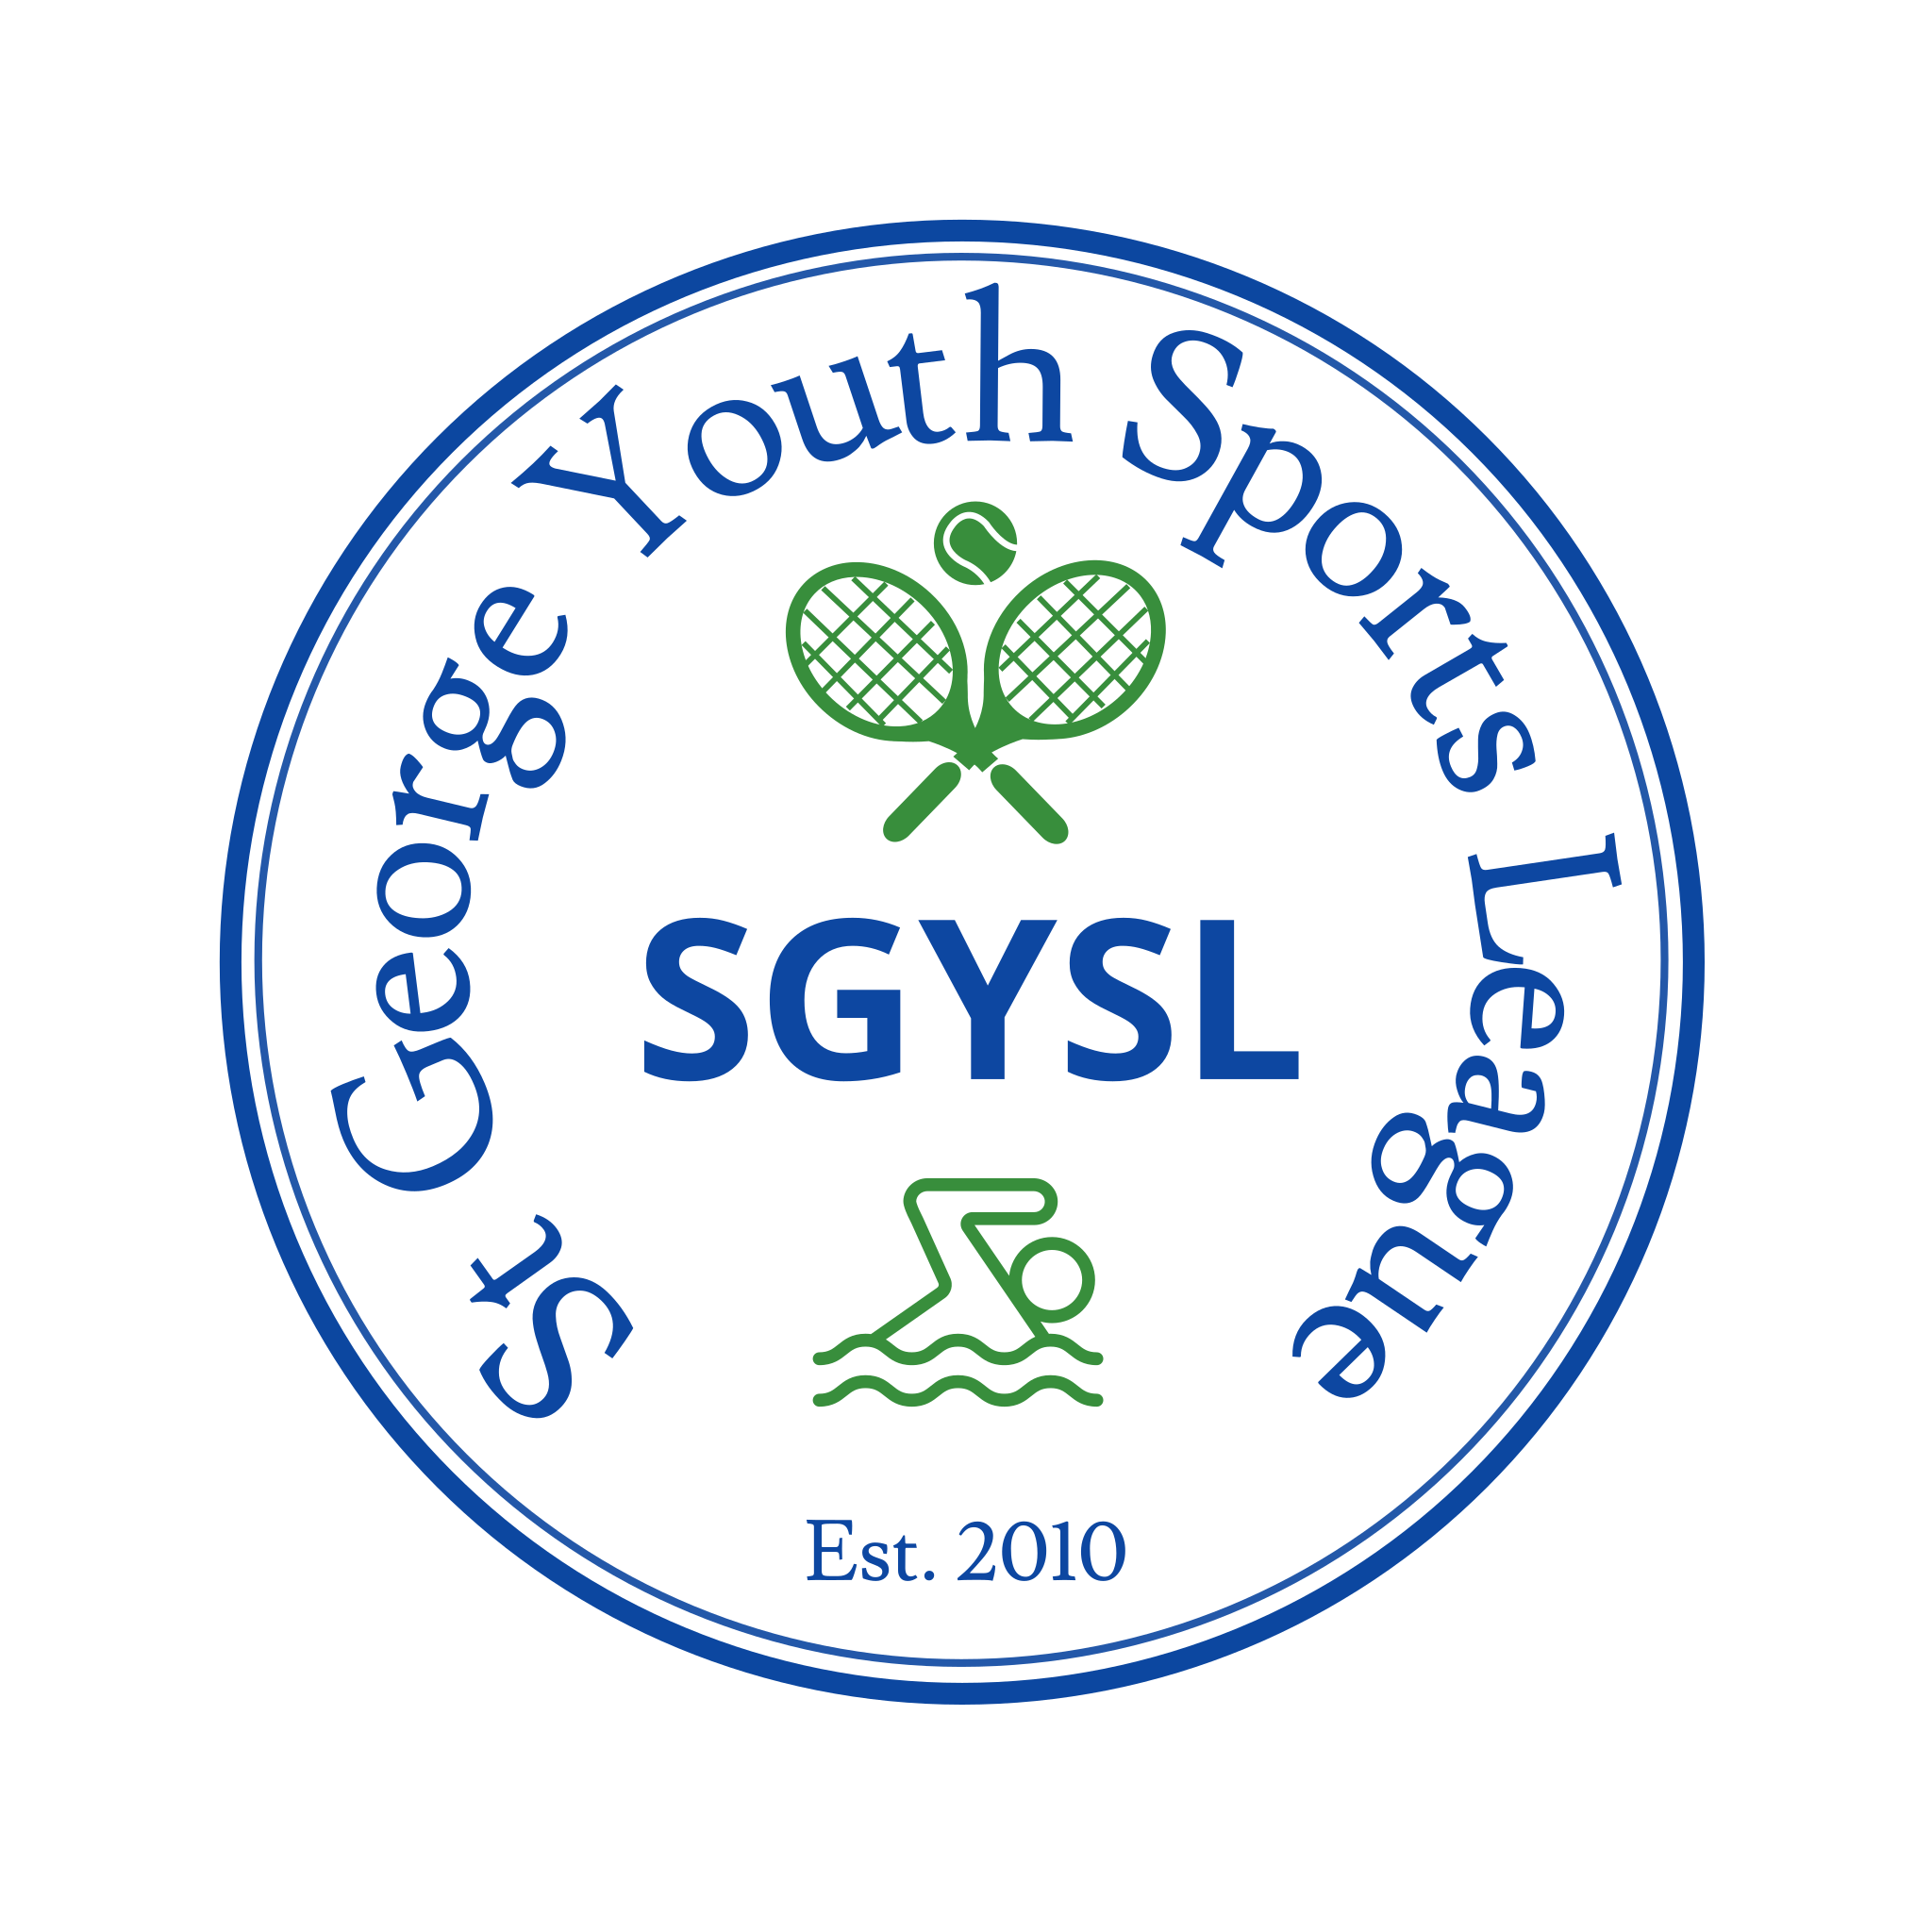 St George Youth Sports League